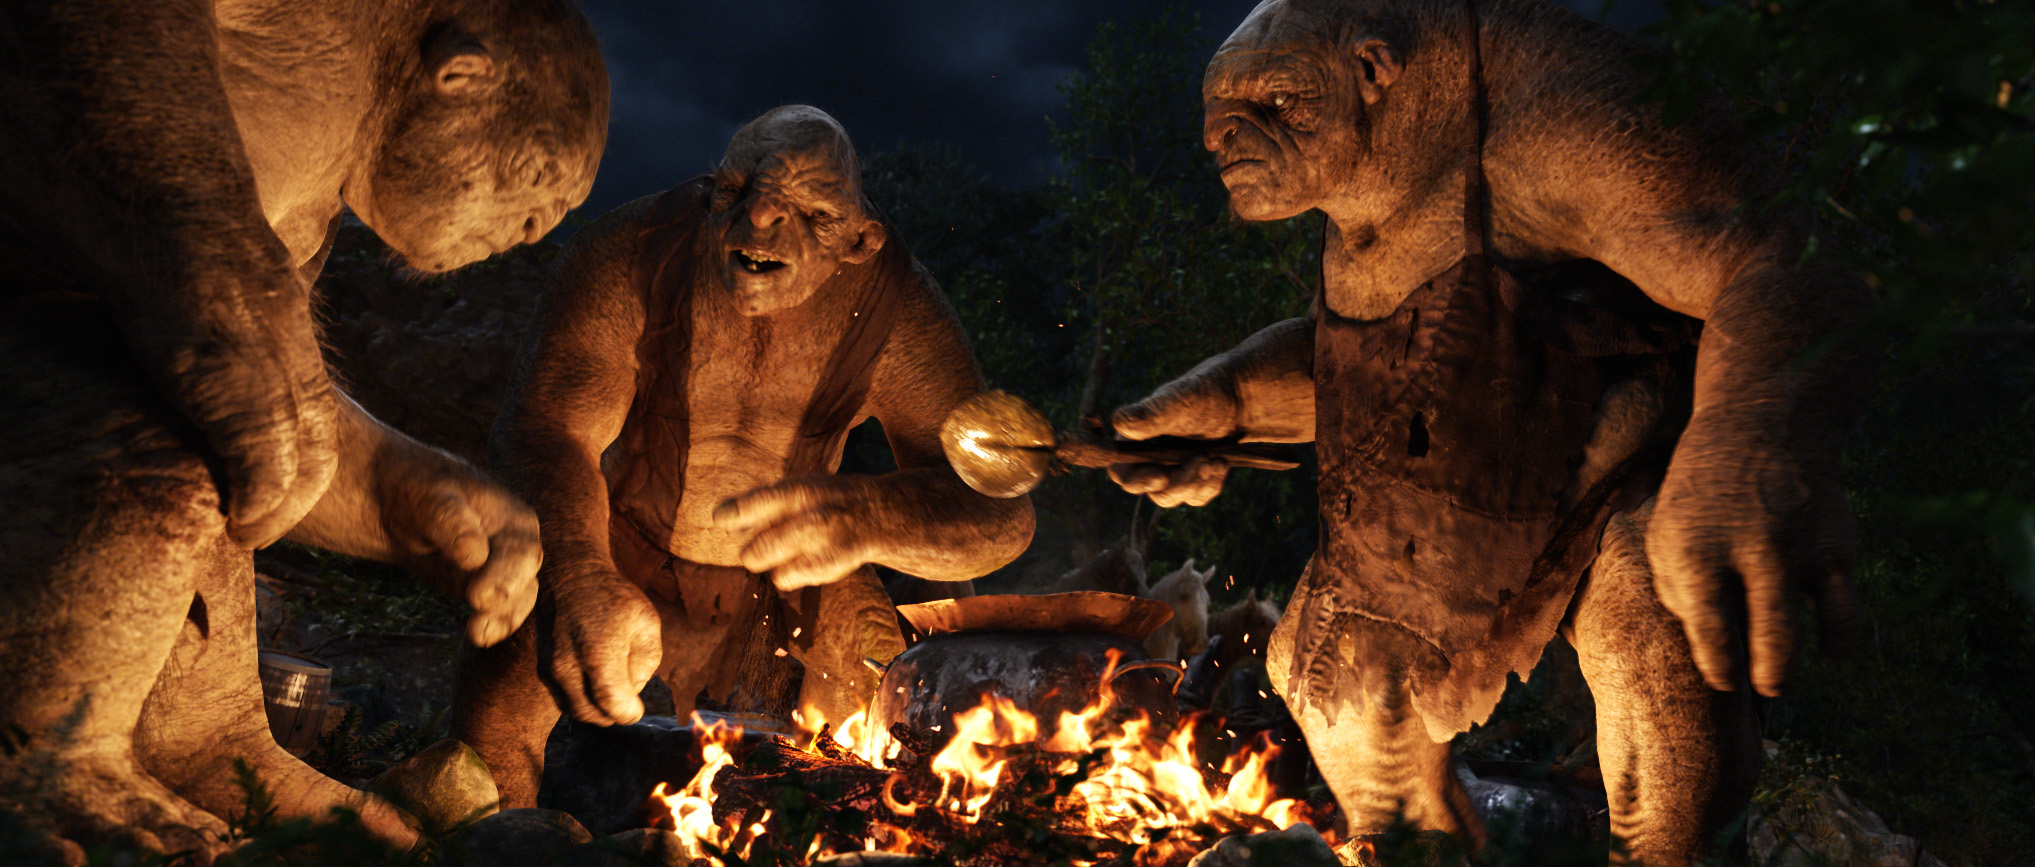 Trolls enjoying a campfire in The Hobbit: An Unexpected Journey.